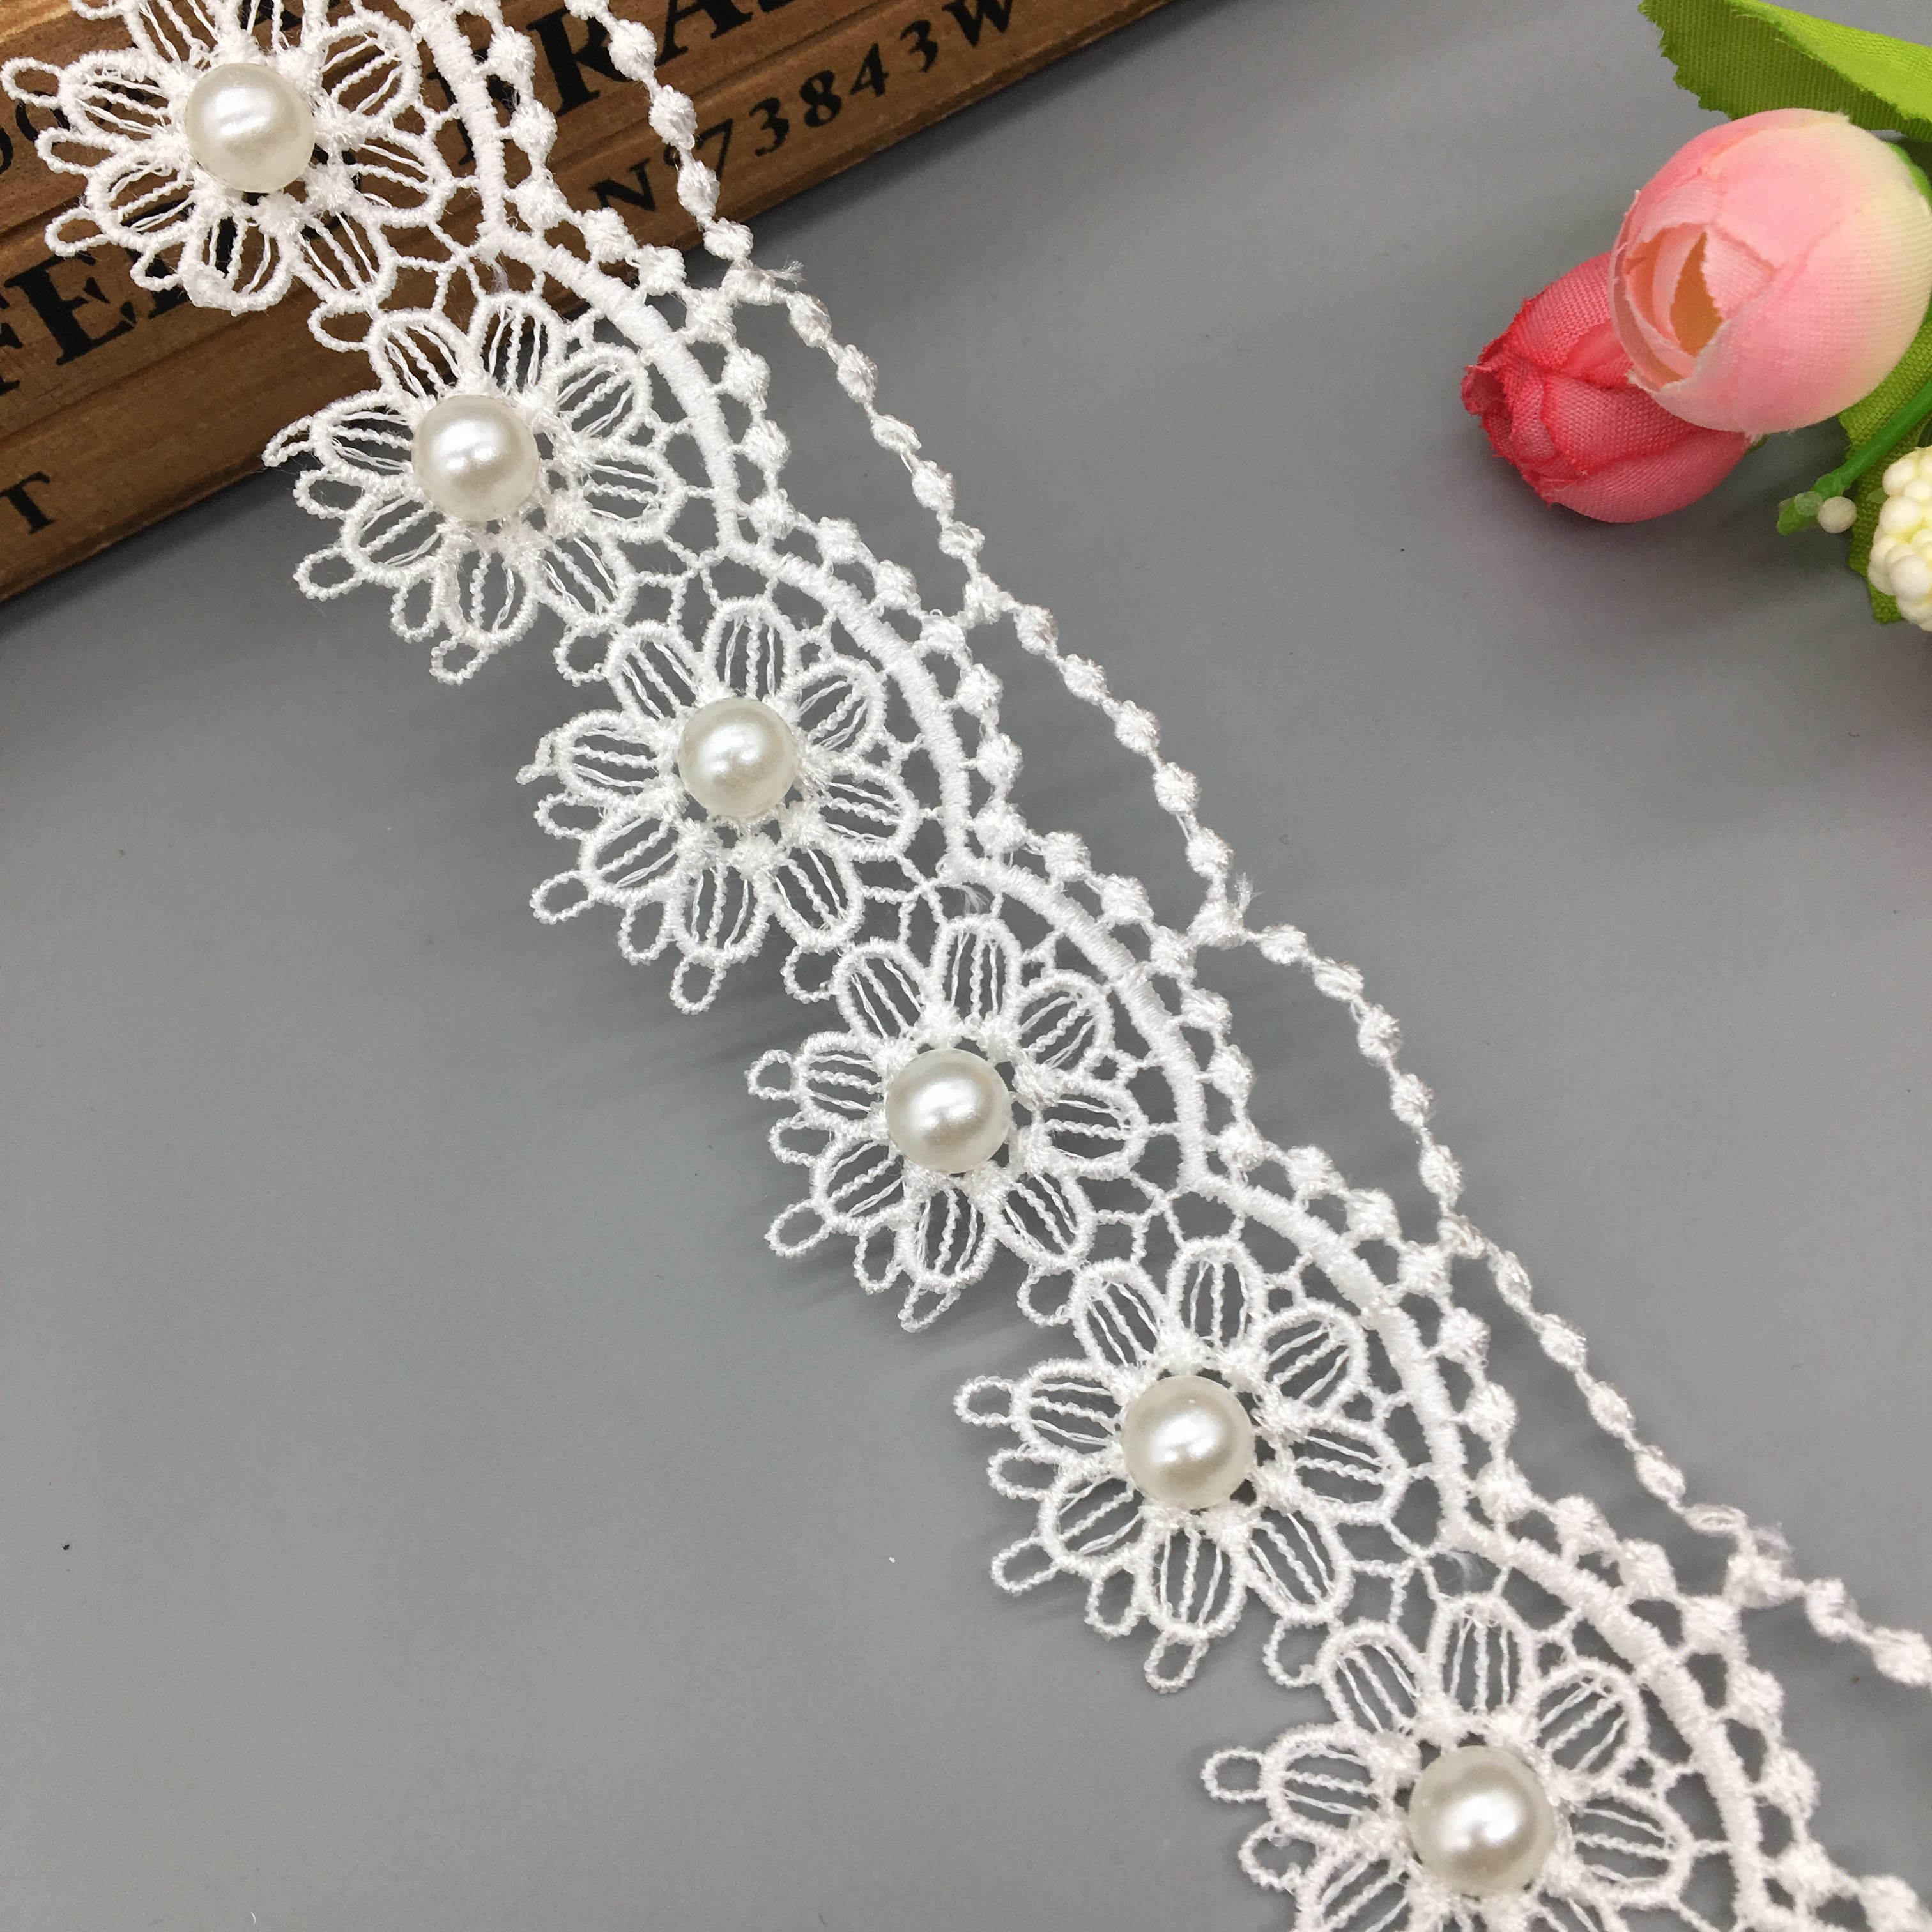 5 yd Rose Vintage Embroidered Lace Trim Ribbon Wedding Applique DIY Sewing Craft